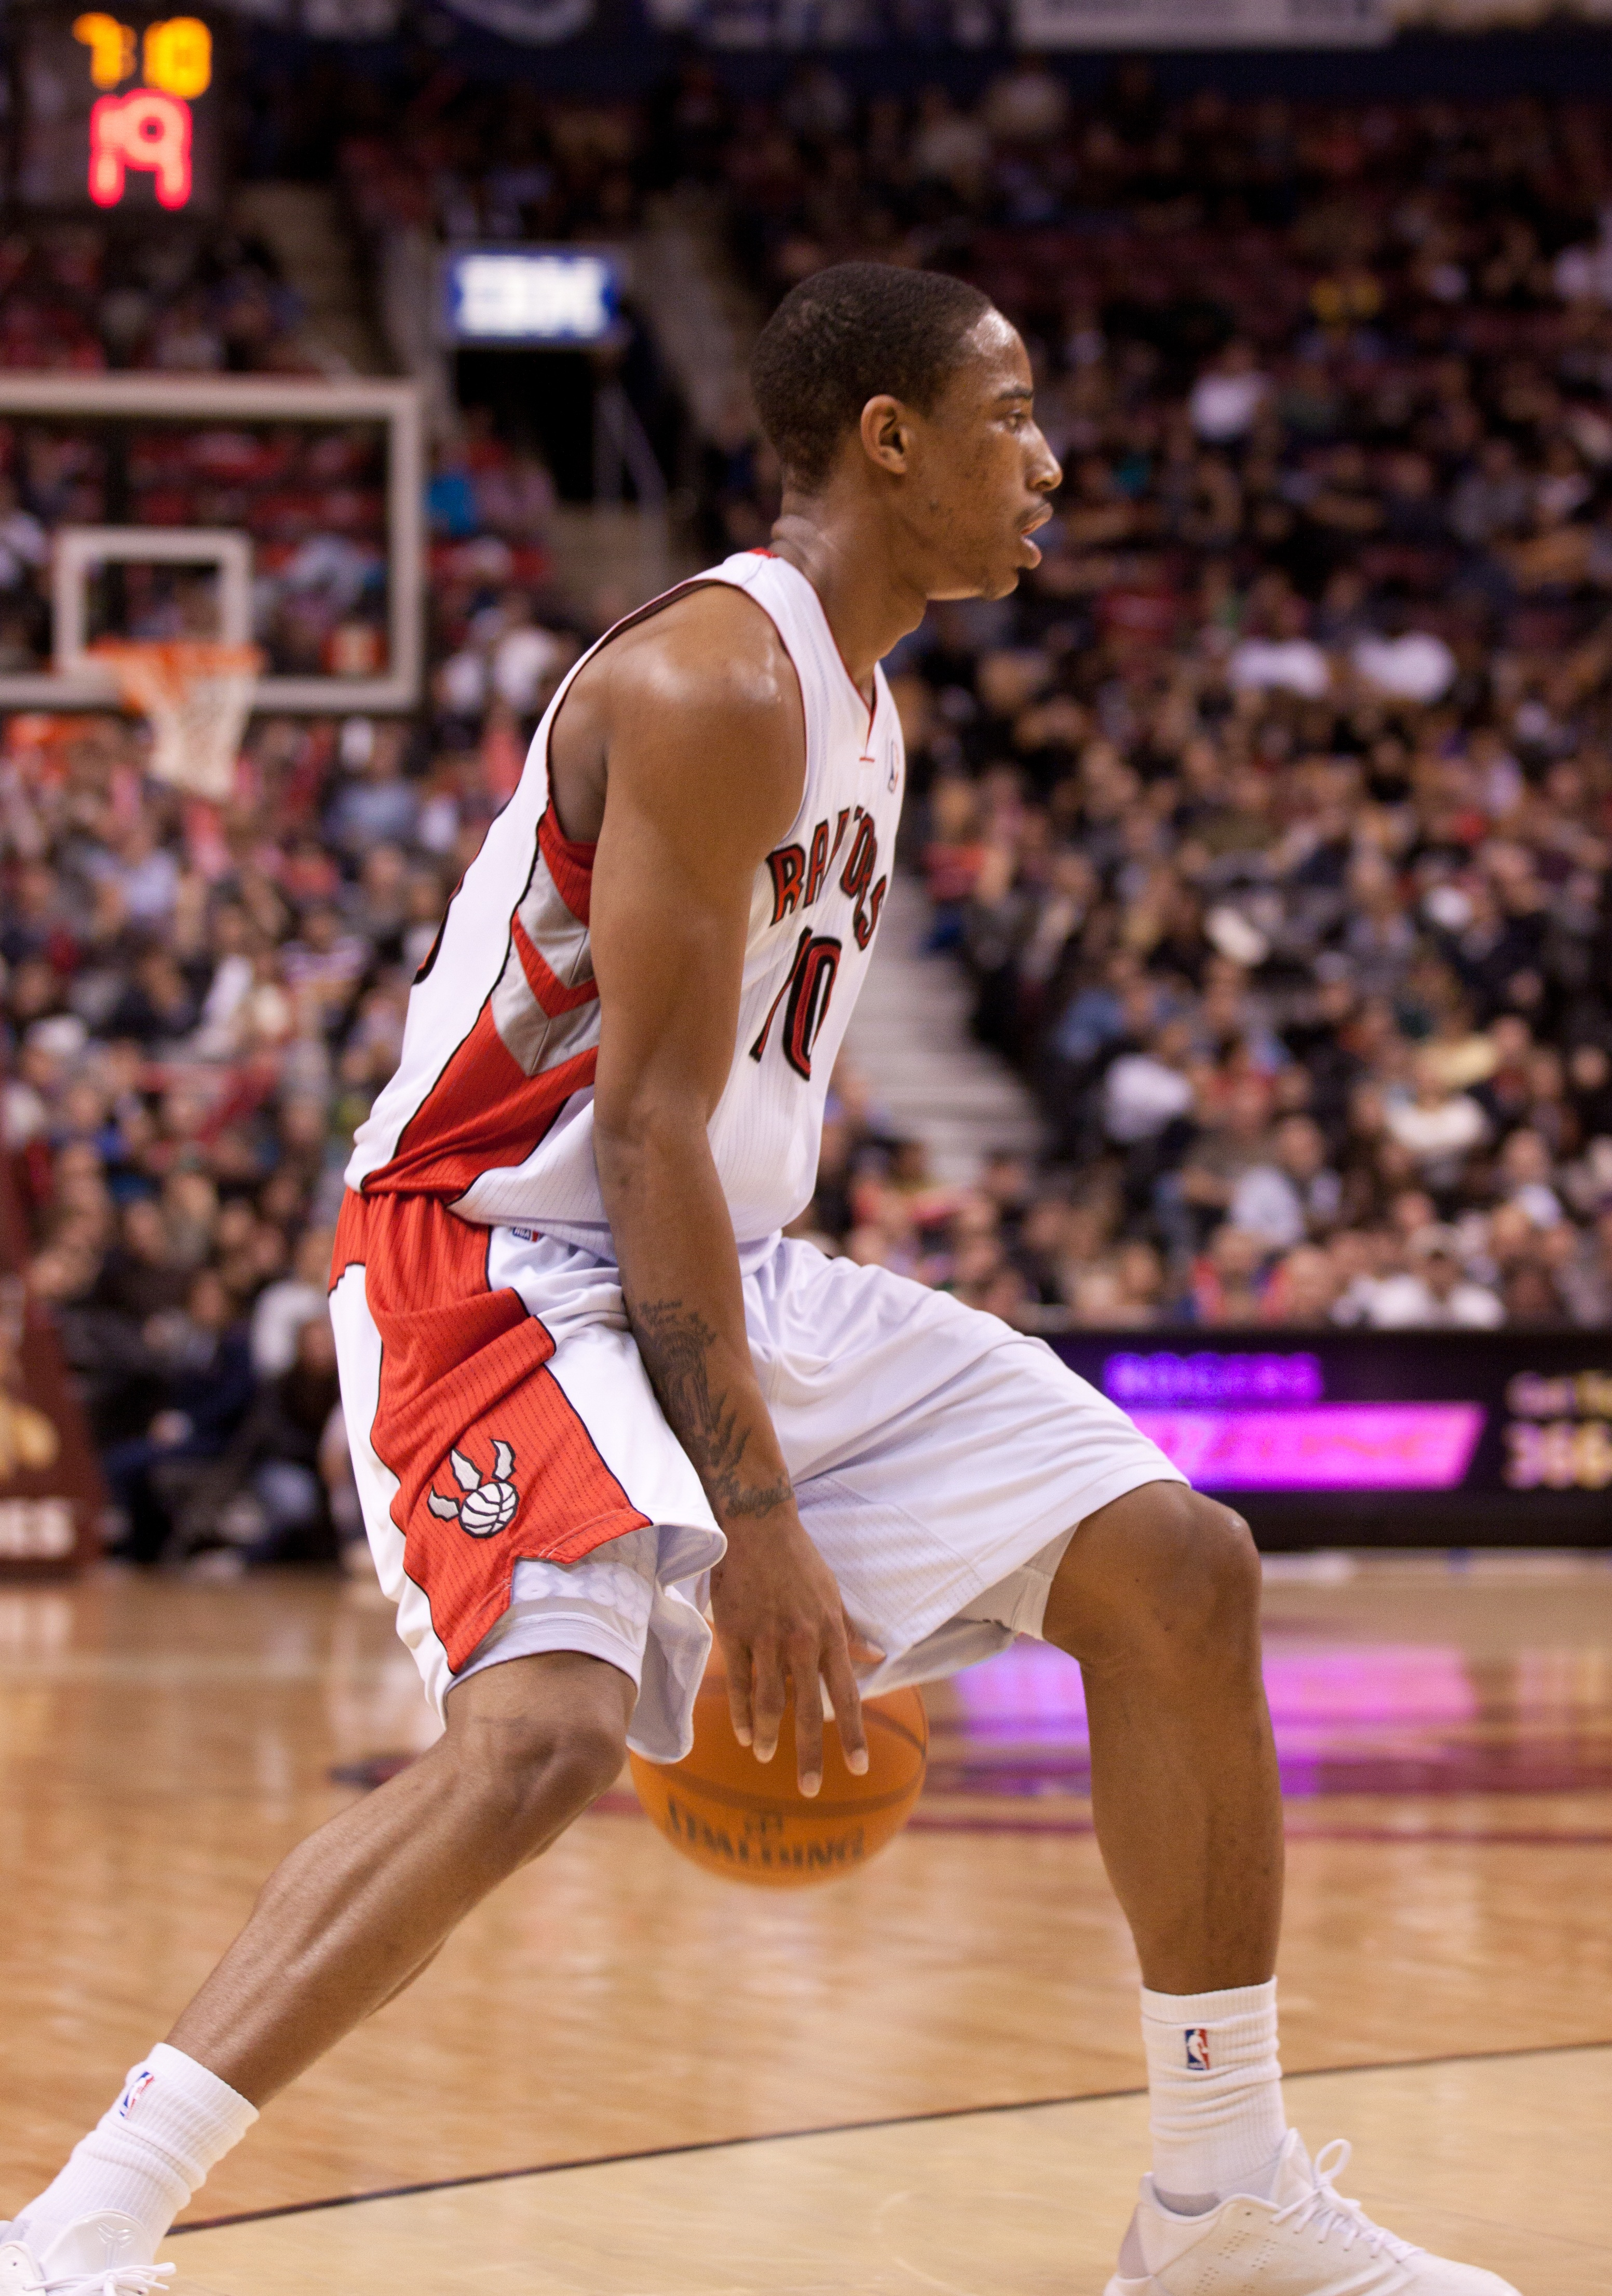 Point guard DeMar DeRozan had a terrific game for the Toronto Raptors scoring a team-high 28 points against the Miami Heat on Friday night. (JP Dhanoa)